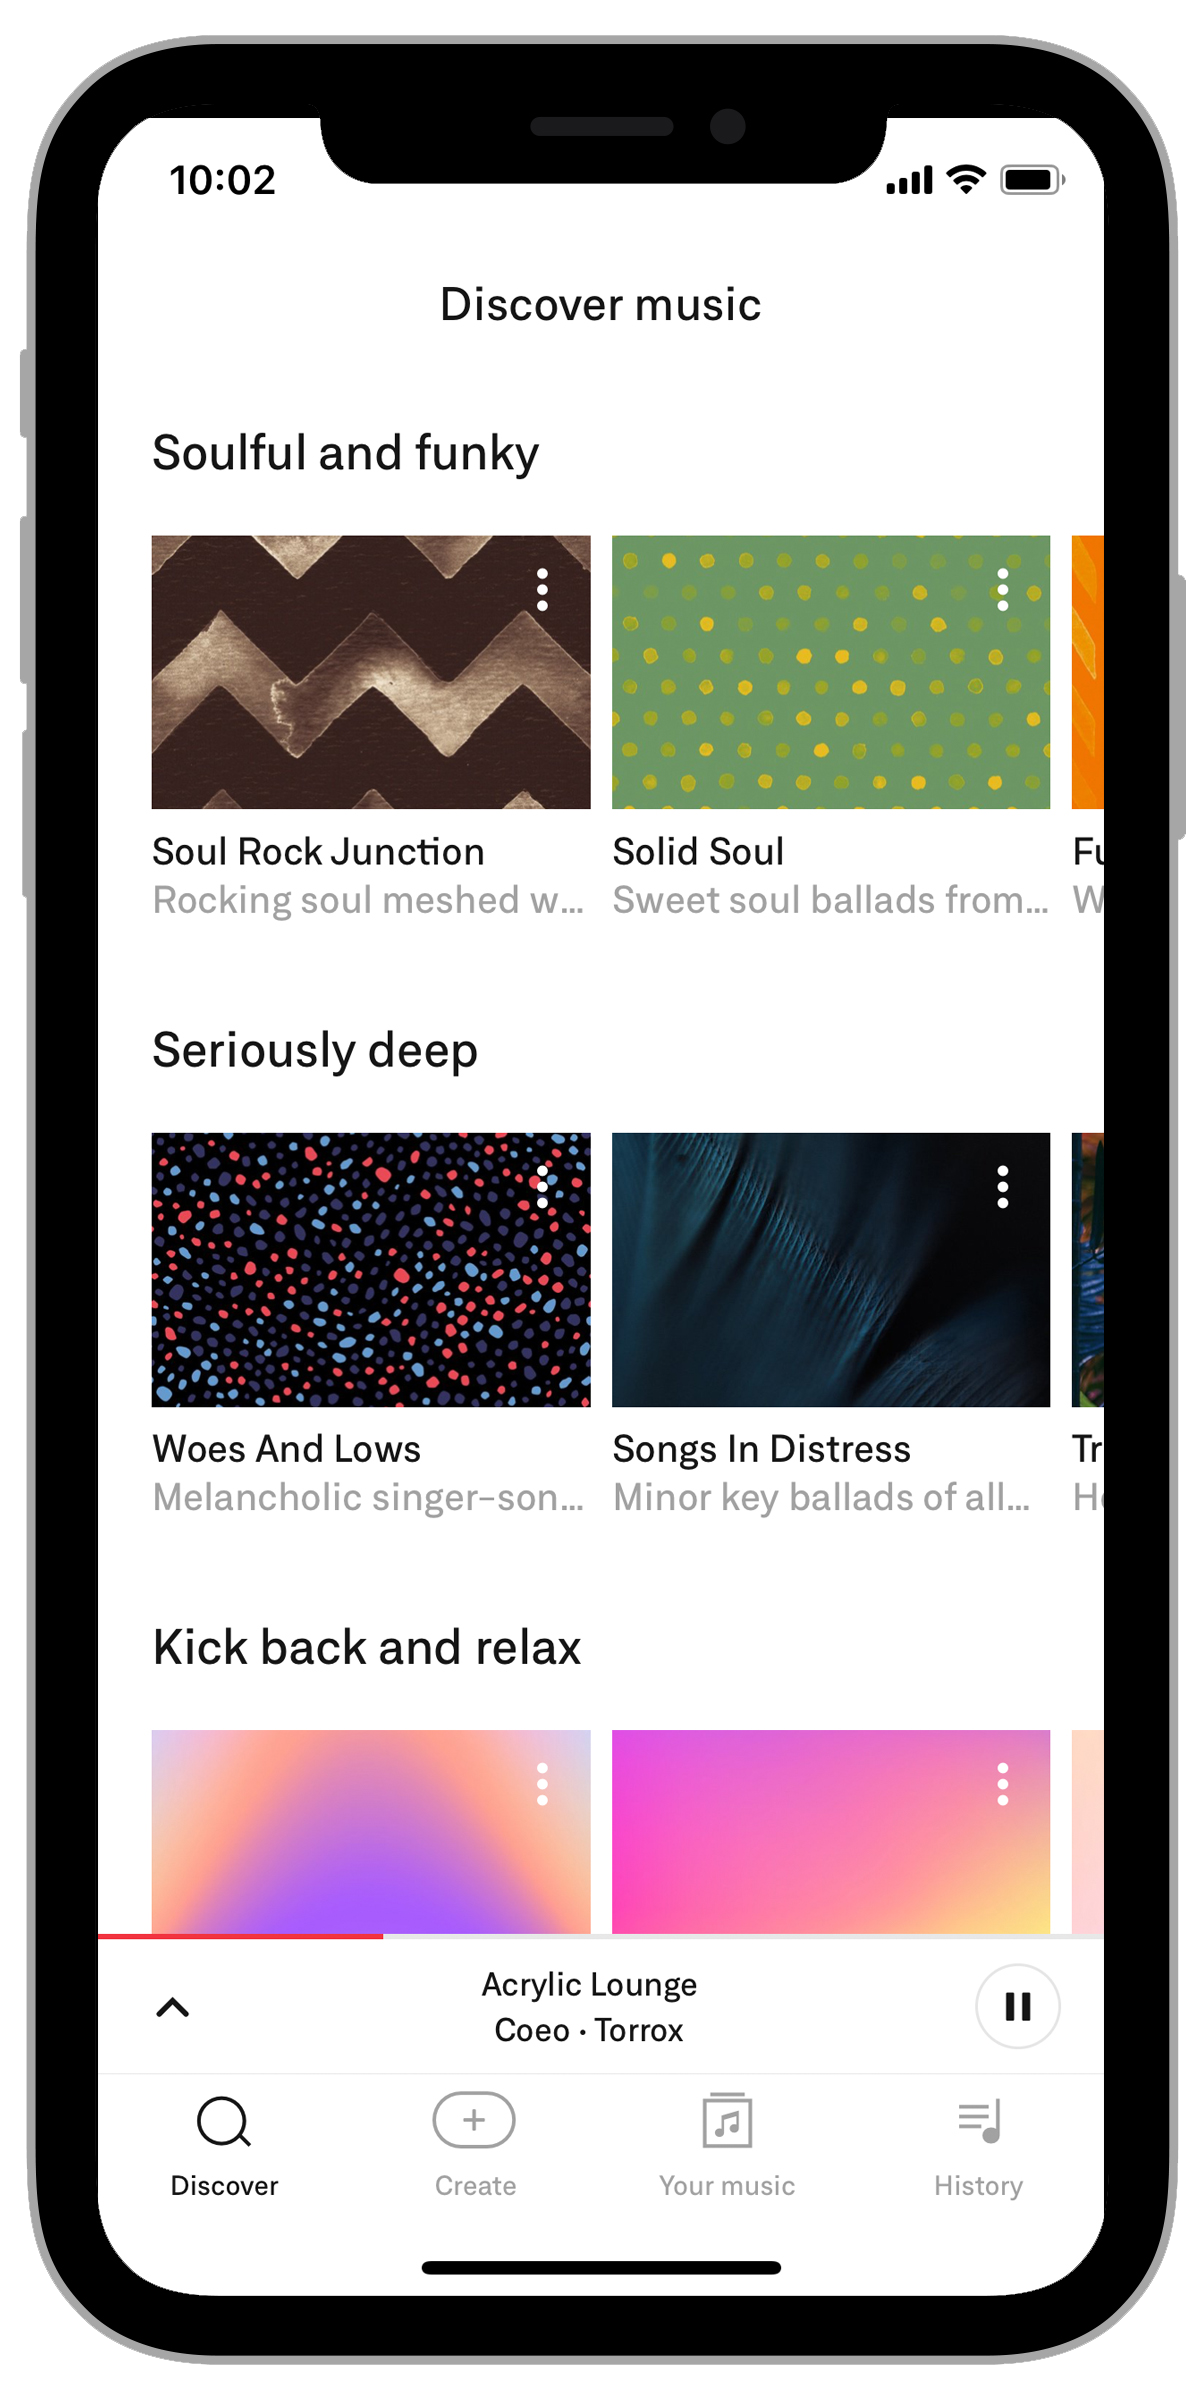 discover music 2 iphone x